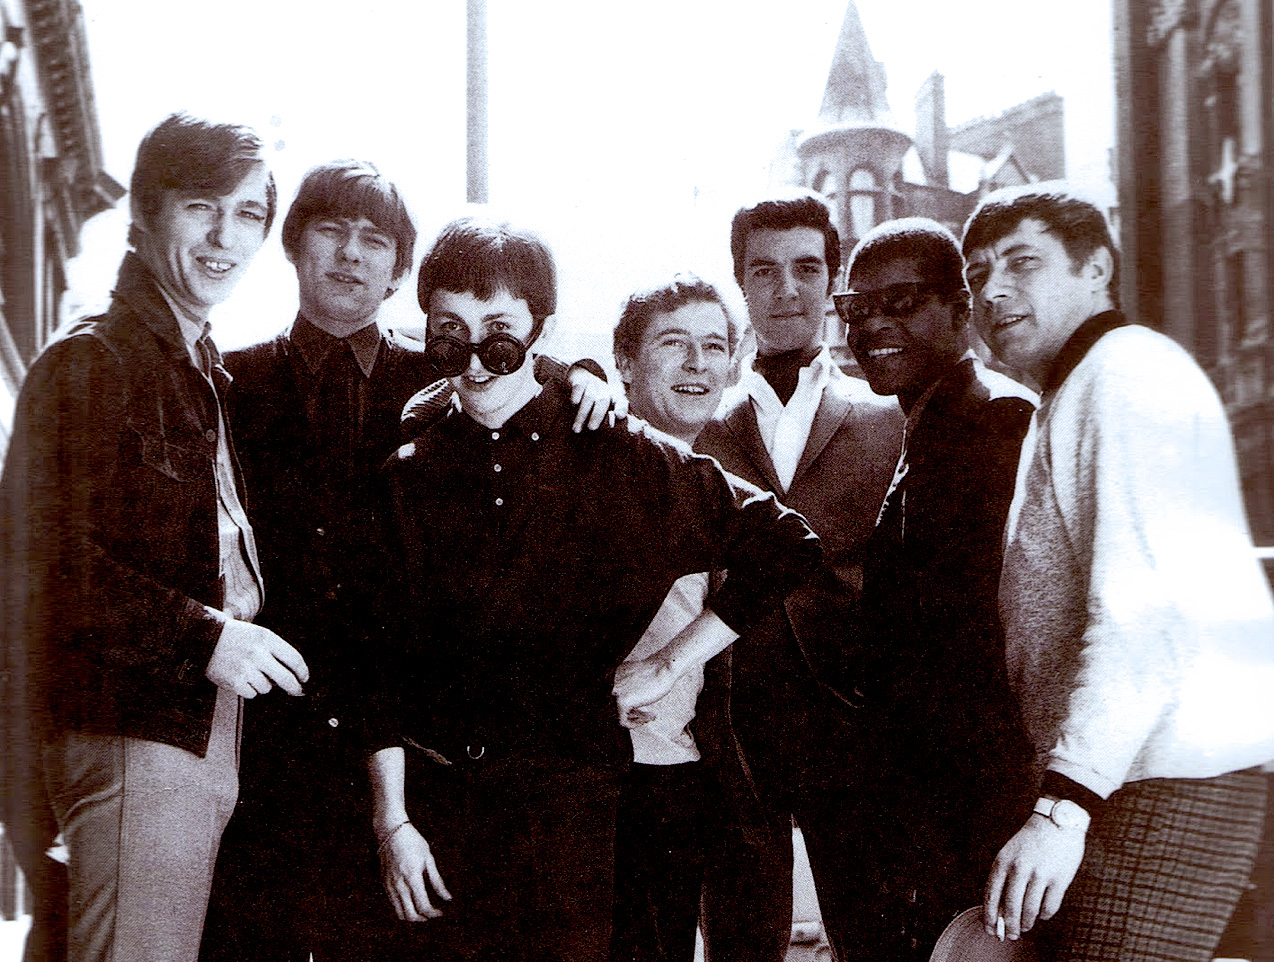 Georgie Fame and The Blue Flames